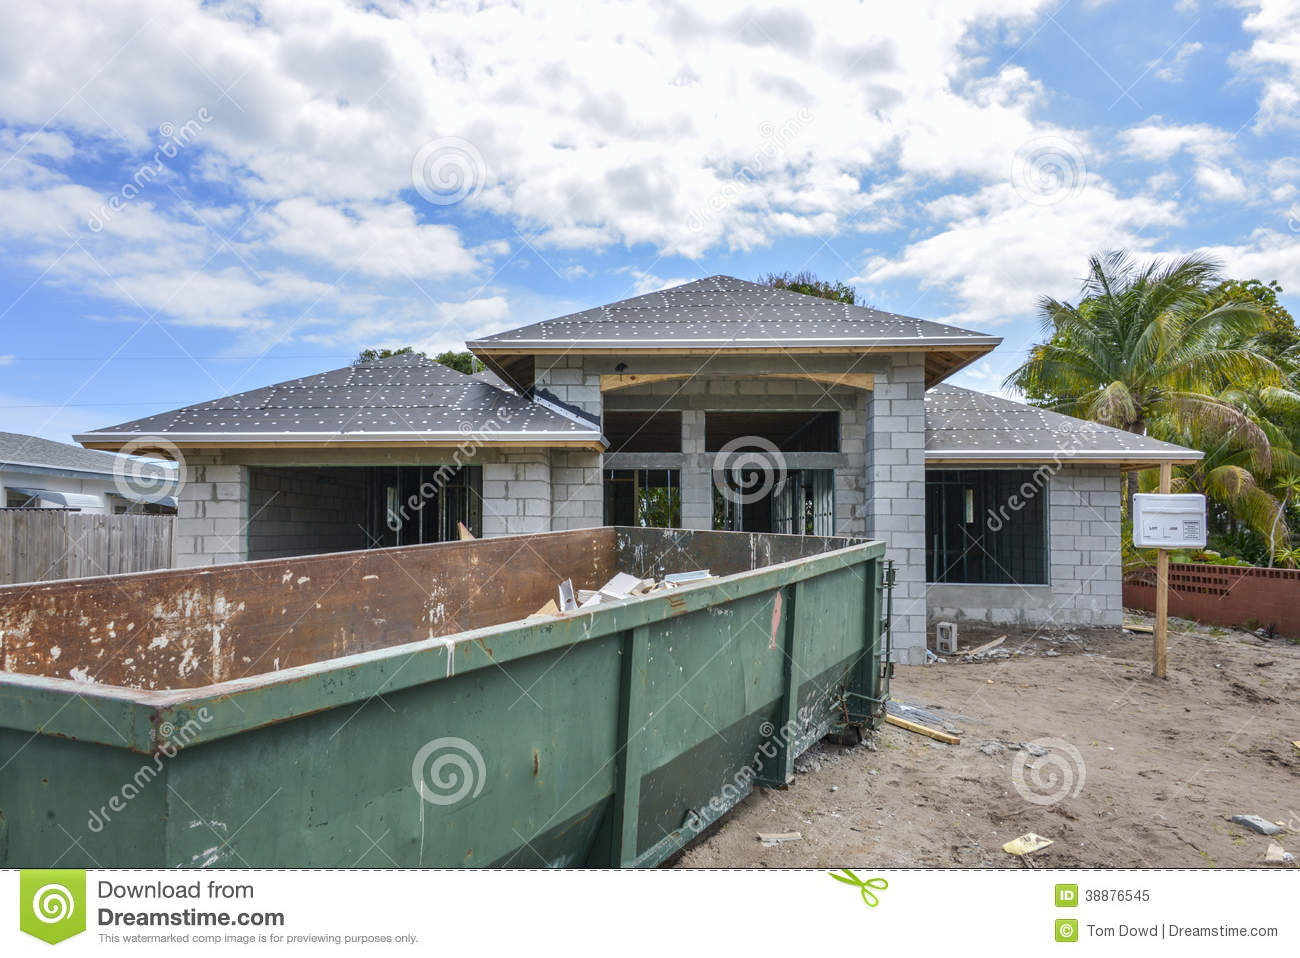 House under construction stock image image of florida for Cinder block house construction